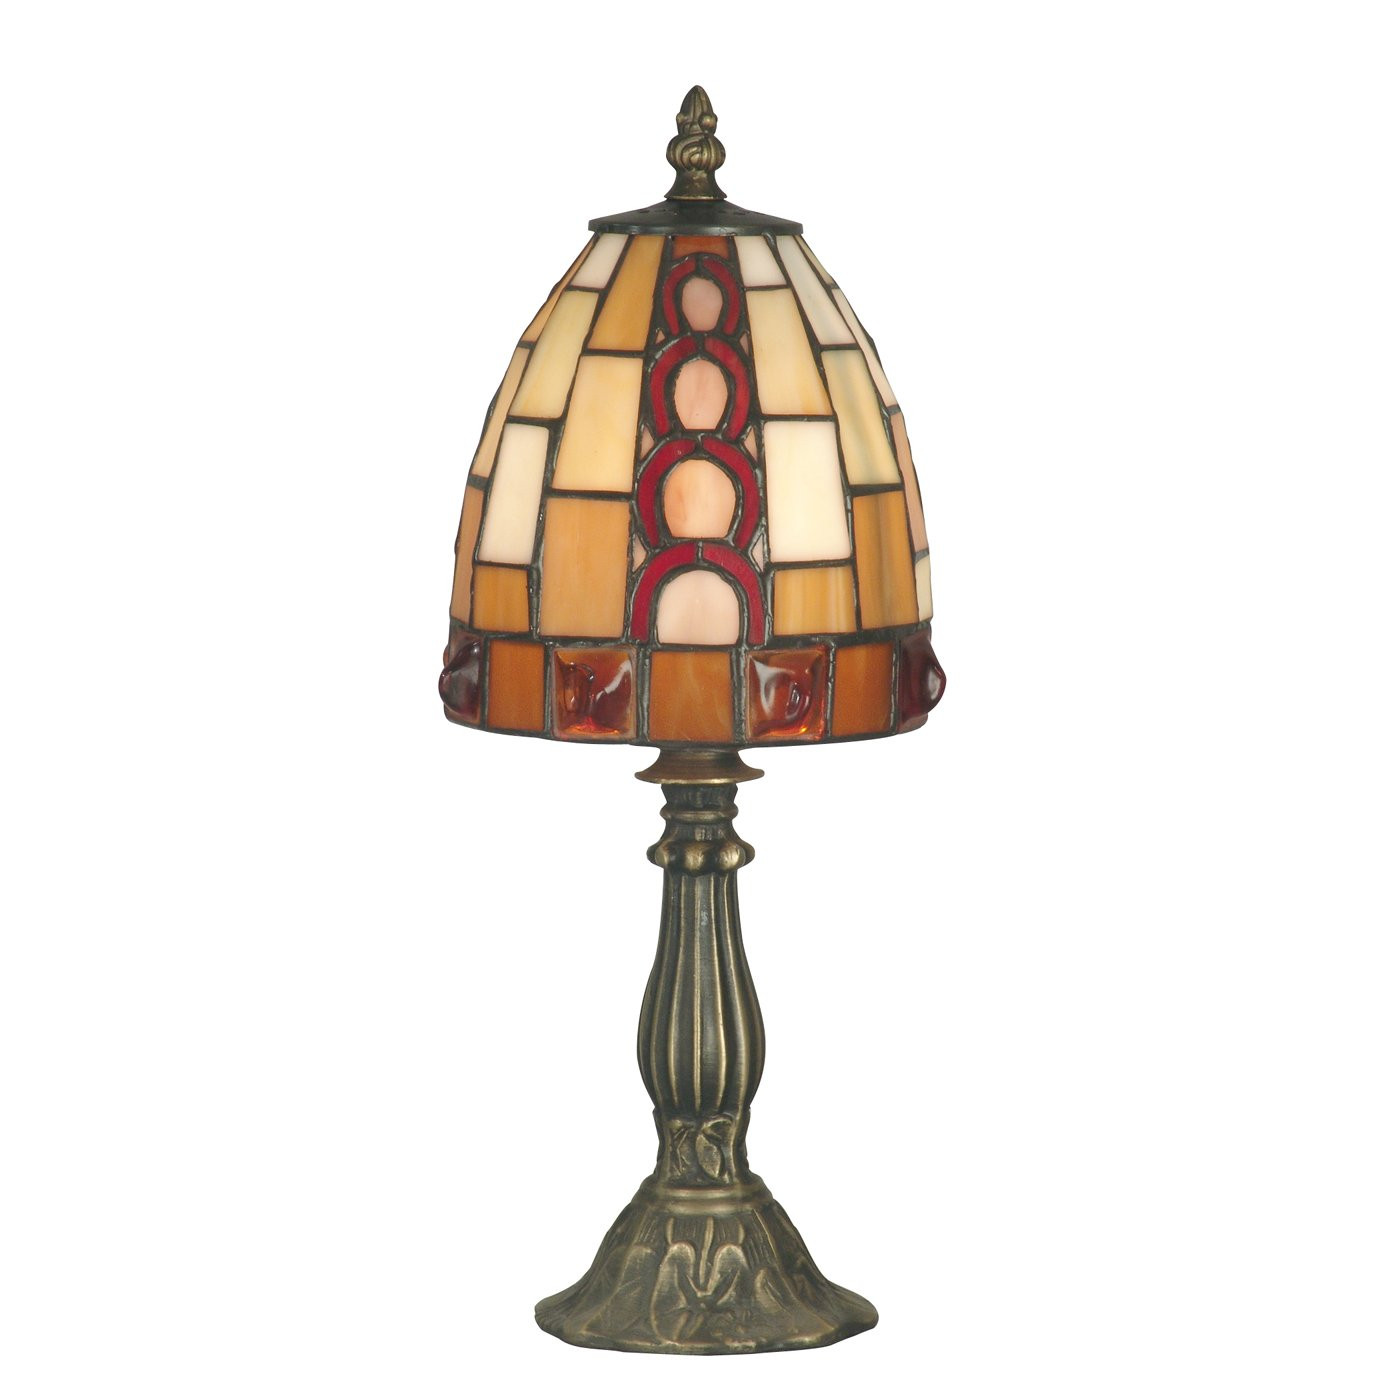 Antique Tiffany Lamps Beautiful Dale Tiffany Baroque Accent Desk Lamp Antique Brass Of Amazing 47 Photos Antique Tiffany Lamps